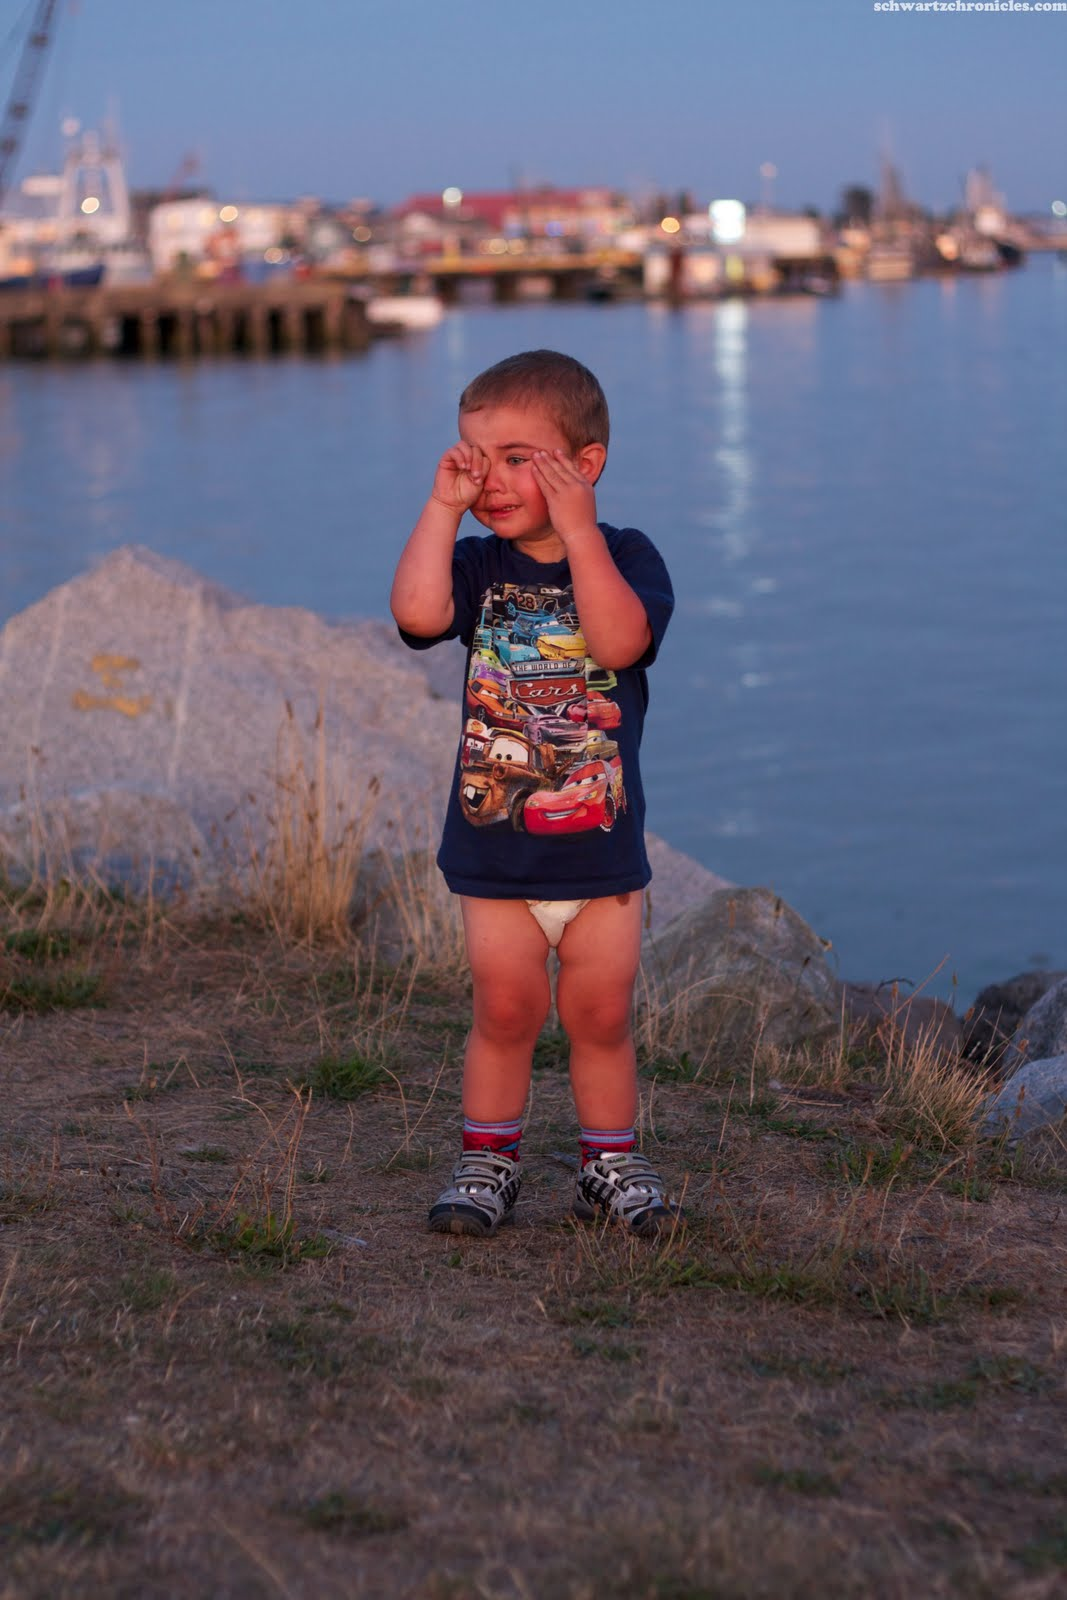 Toddlers Wearing Diapers http://www.schwartzchronicles.com/2011/09/sunset-with-kids.html